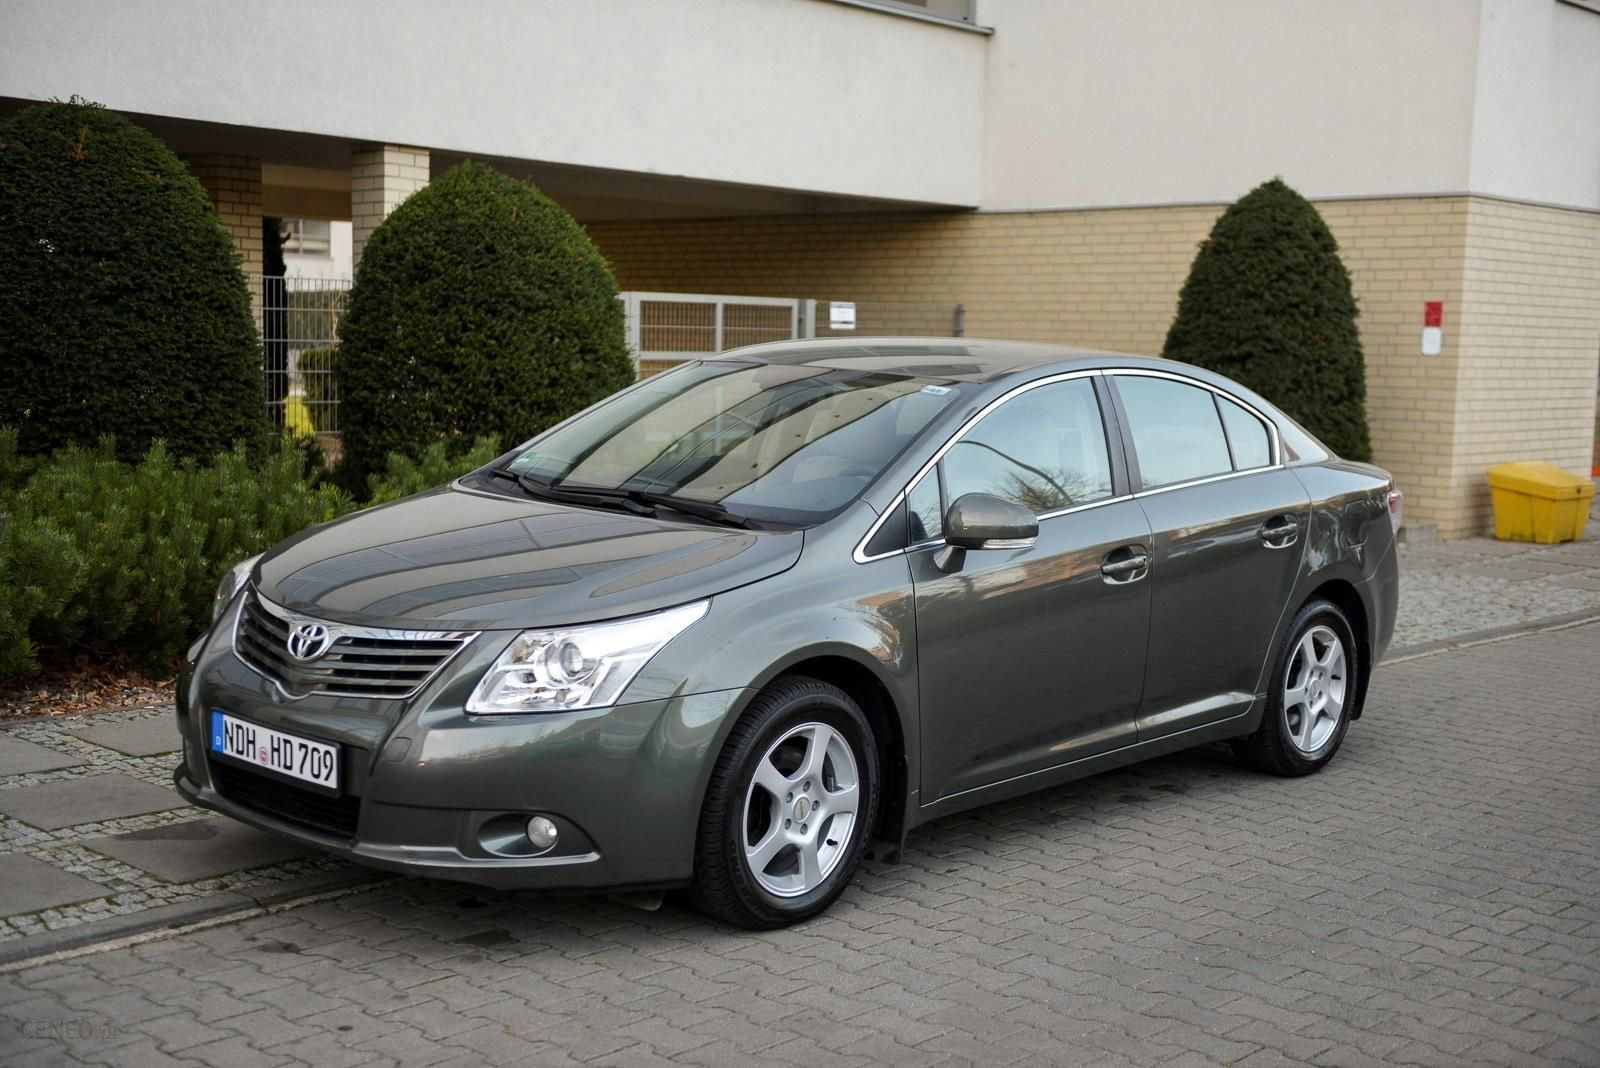 Toyota Avensis 1 8 Valve Matic Exclusive Skory Opinie I Ceny Na Ceneo Pl